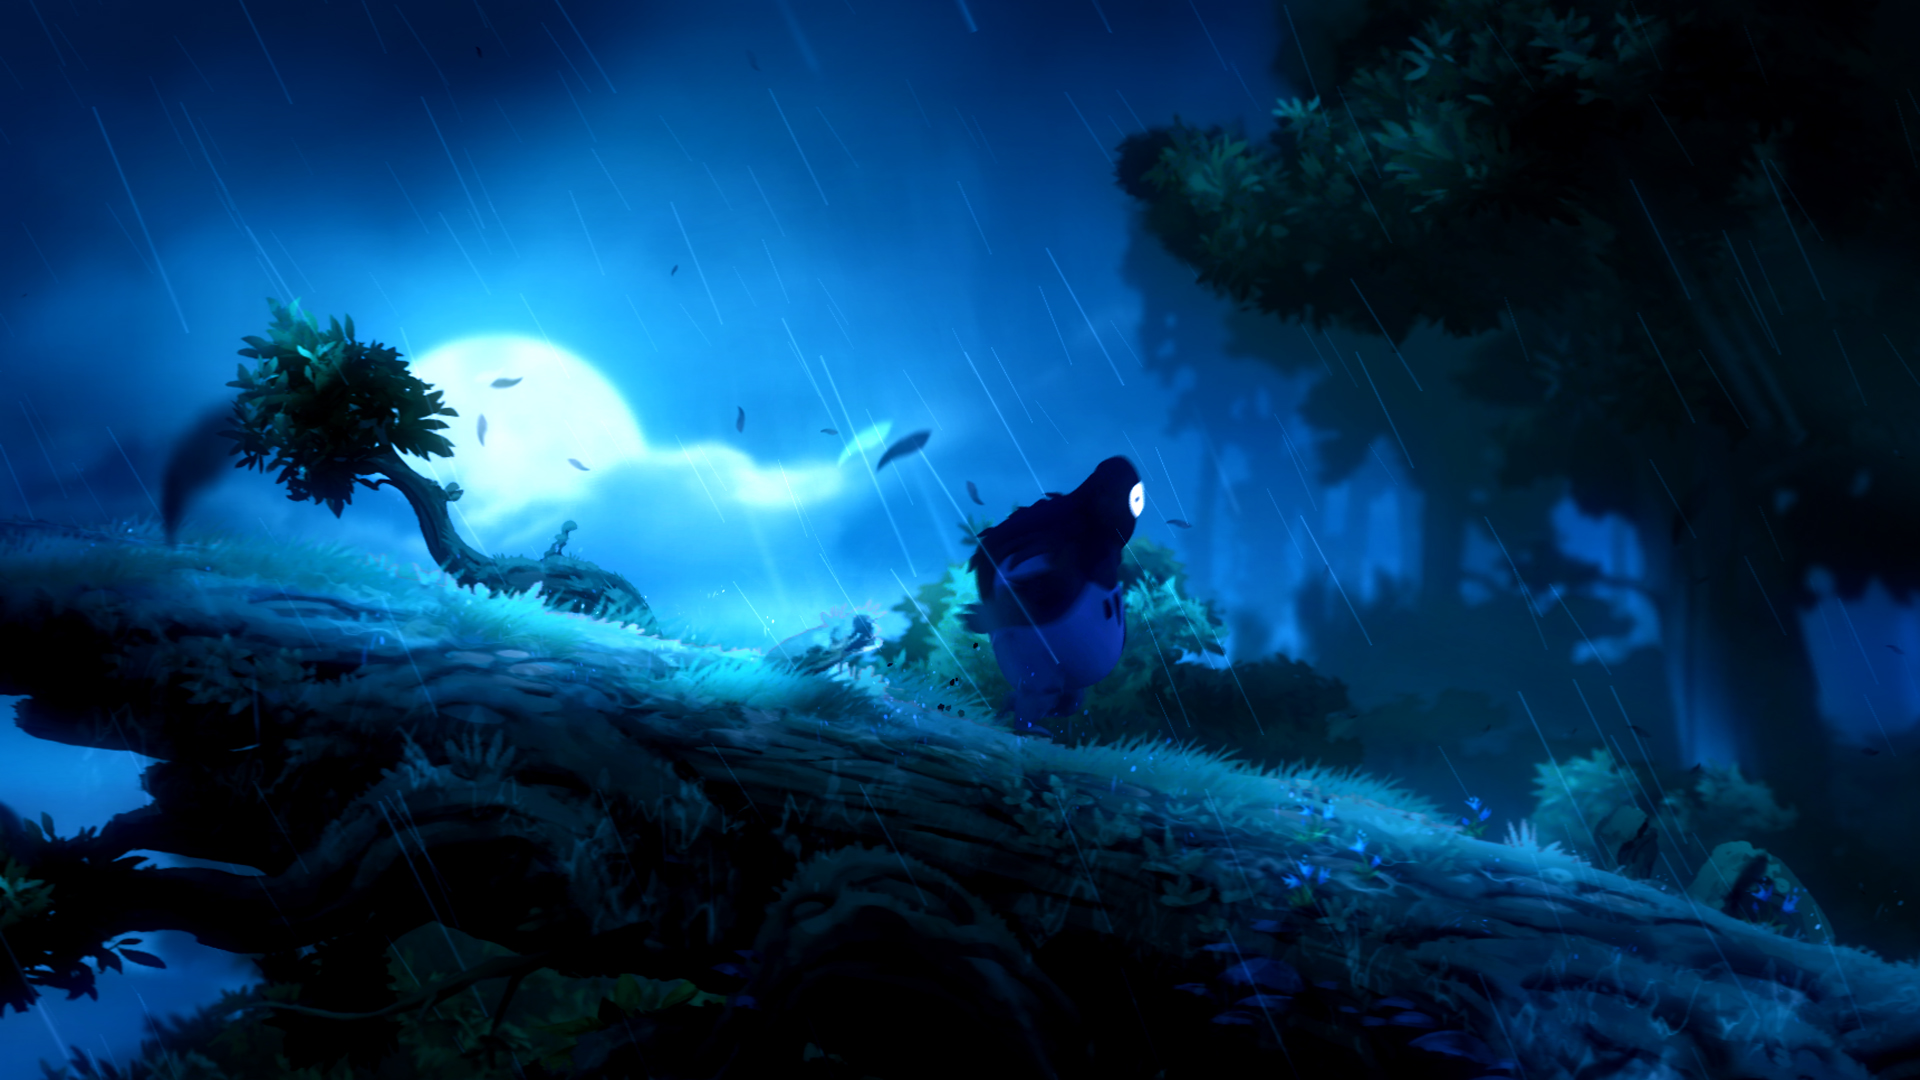 Ori and the Blind Forest makes momma Metroid super-proud